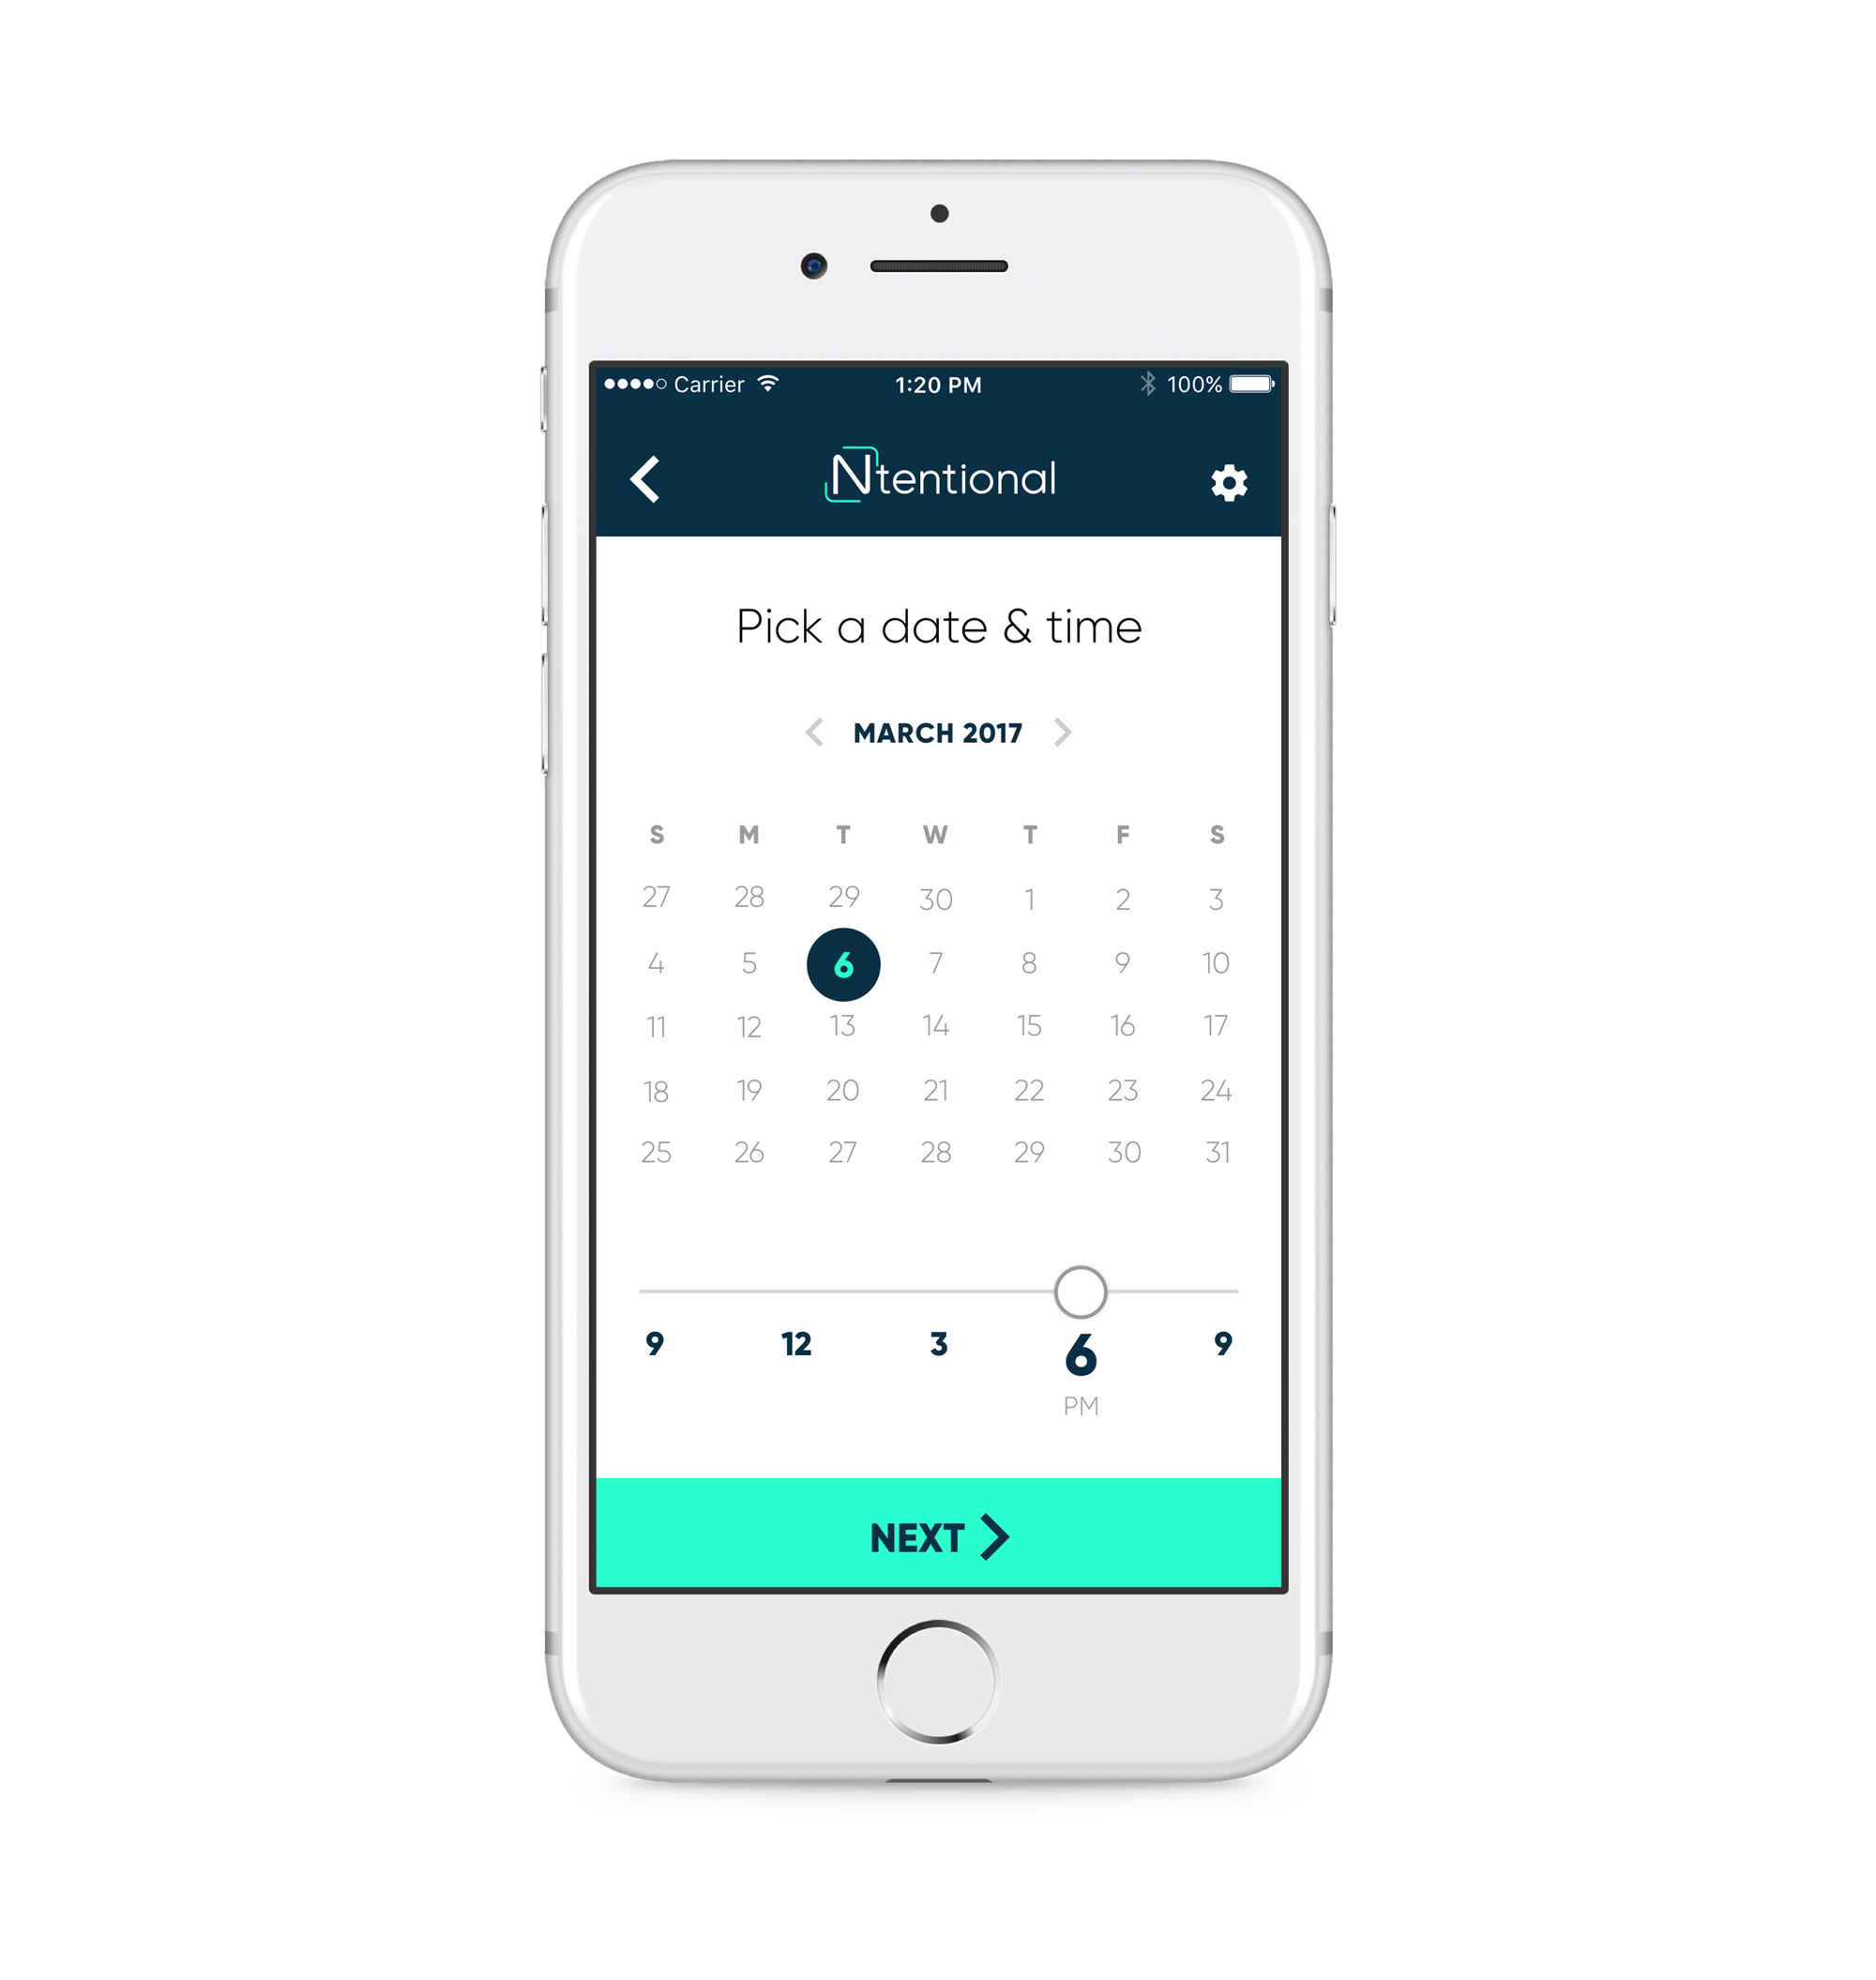 The Idea - The idea for this app came about due to my own need for it.I had just started a new relationship and was spending a lot of time with my significant other. I was struggling to find a way to stay connected to my friends and family while also trying to be mindful of being present while in the company of my boyfriend.I was looking for a way to notify friends, family, or any possible incoming notifications that I wasn't ignoring them, but that I was spending some focused, intentional time offline and off of my devices. I wanted the freedom to not respond to the incoming messages without feeling like I was ignoring the people I loved and cared about. I wanted to notify them that I did in fact receive their message, I wasn't ignoring them.Similar to an away message on a chat program, or an out of office/vacation responder on your email, Ntentional would serve in the same way.Whether you are spending the afternoon wine tasting, going on a backpacking trip, or just at home binge watching Netflix, the users could notify their social circles before going